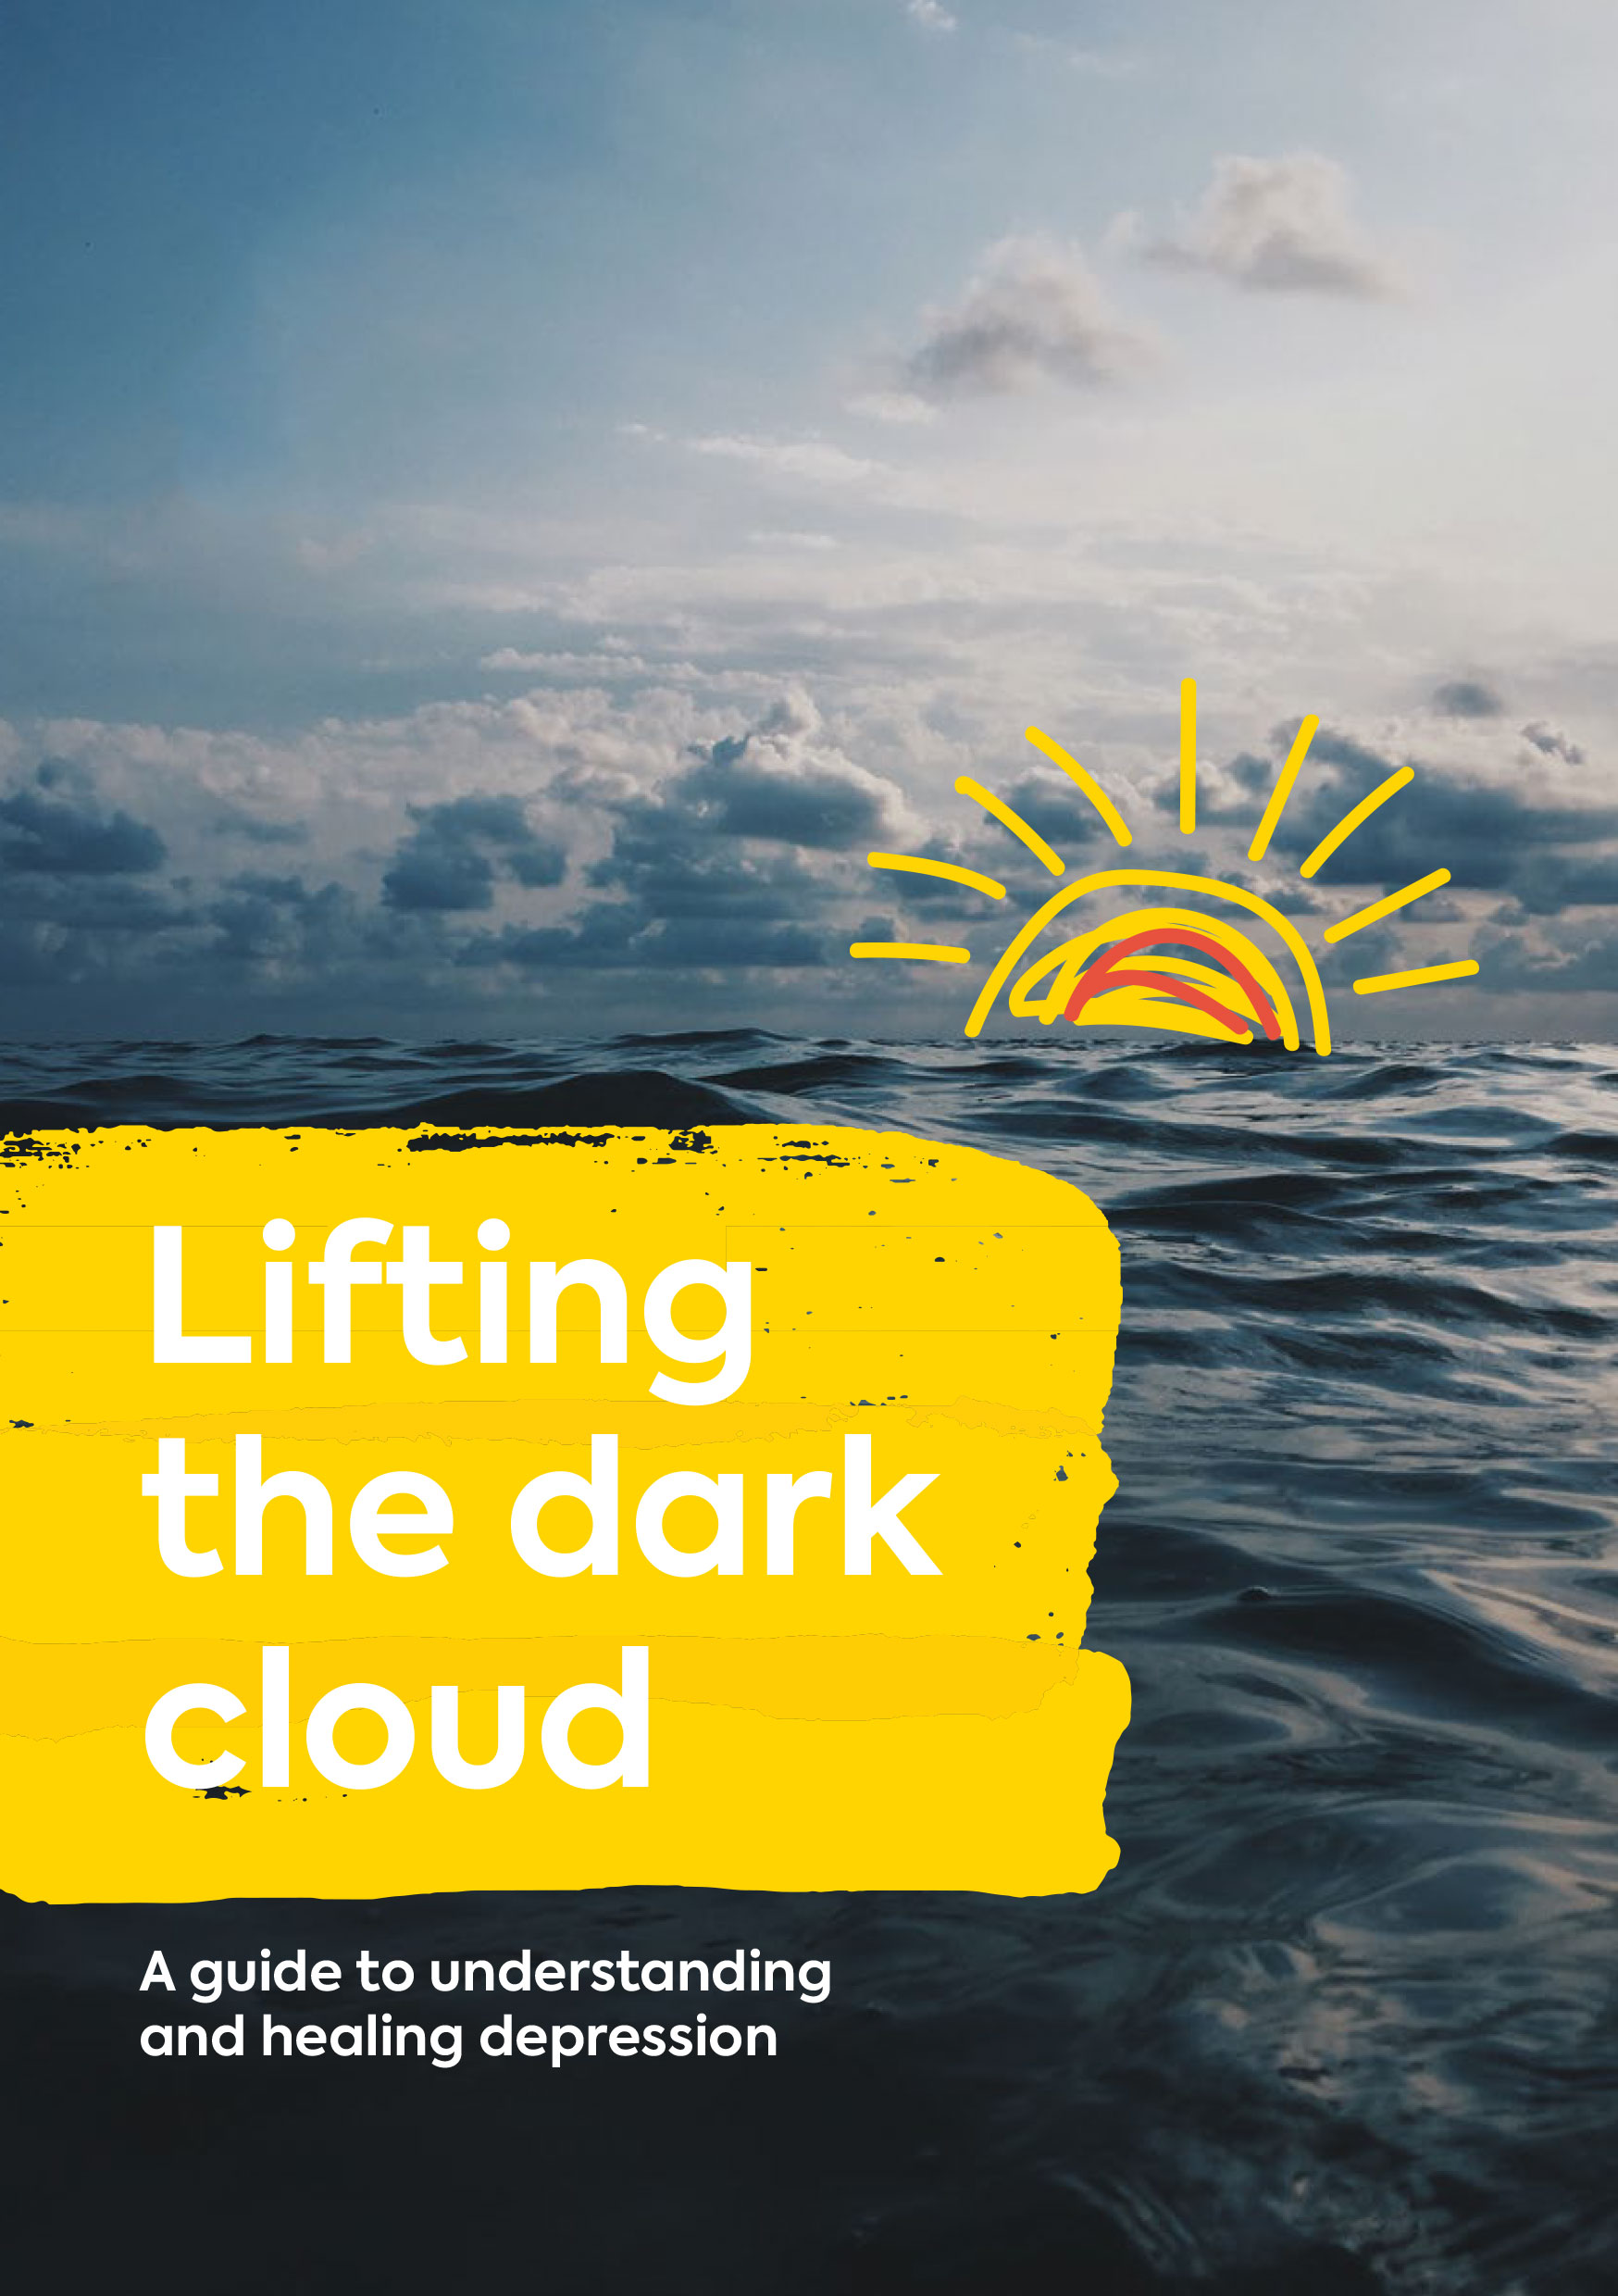 Lifting the dark cloud: A guide to understanding & healing depression